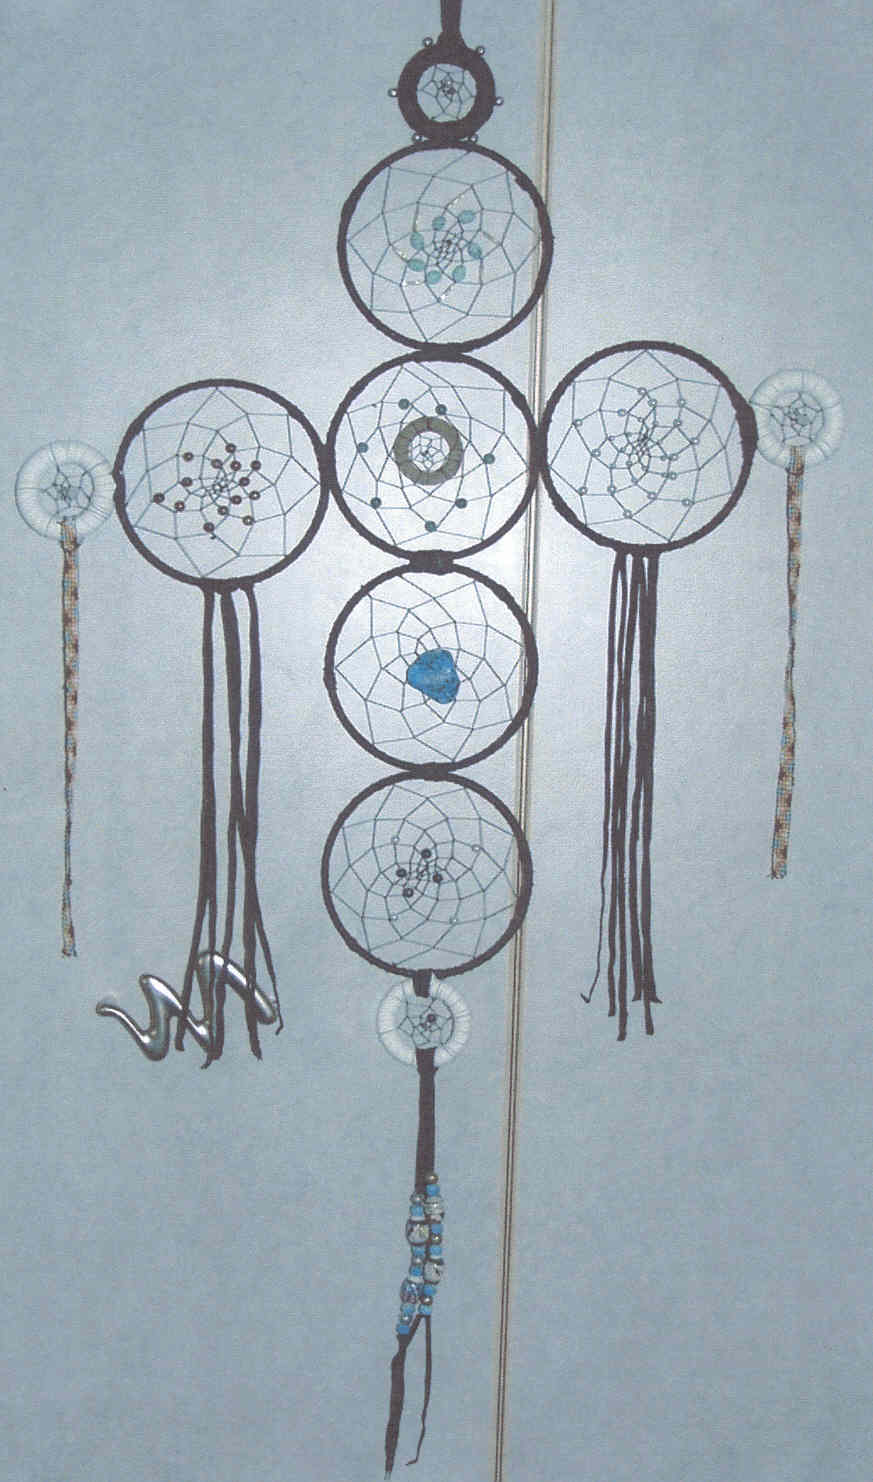 Dream Catcher Kreuz - Dream Power. Mit Glasperlenbändern, indianischen Keramikperlen, Metalperlen, echten Perlen, Arizona-Türkis, Sodalith, Flourit, Glasperlen. Mit echten Leder aufwendig als Kreuz gefertigt. Richtpreis €  99,00.-